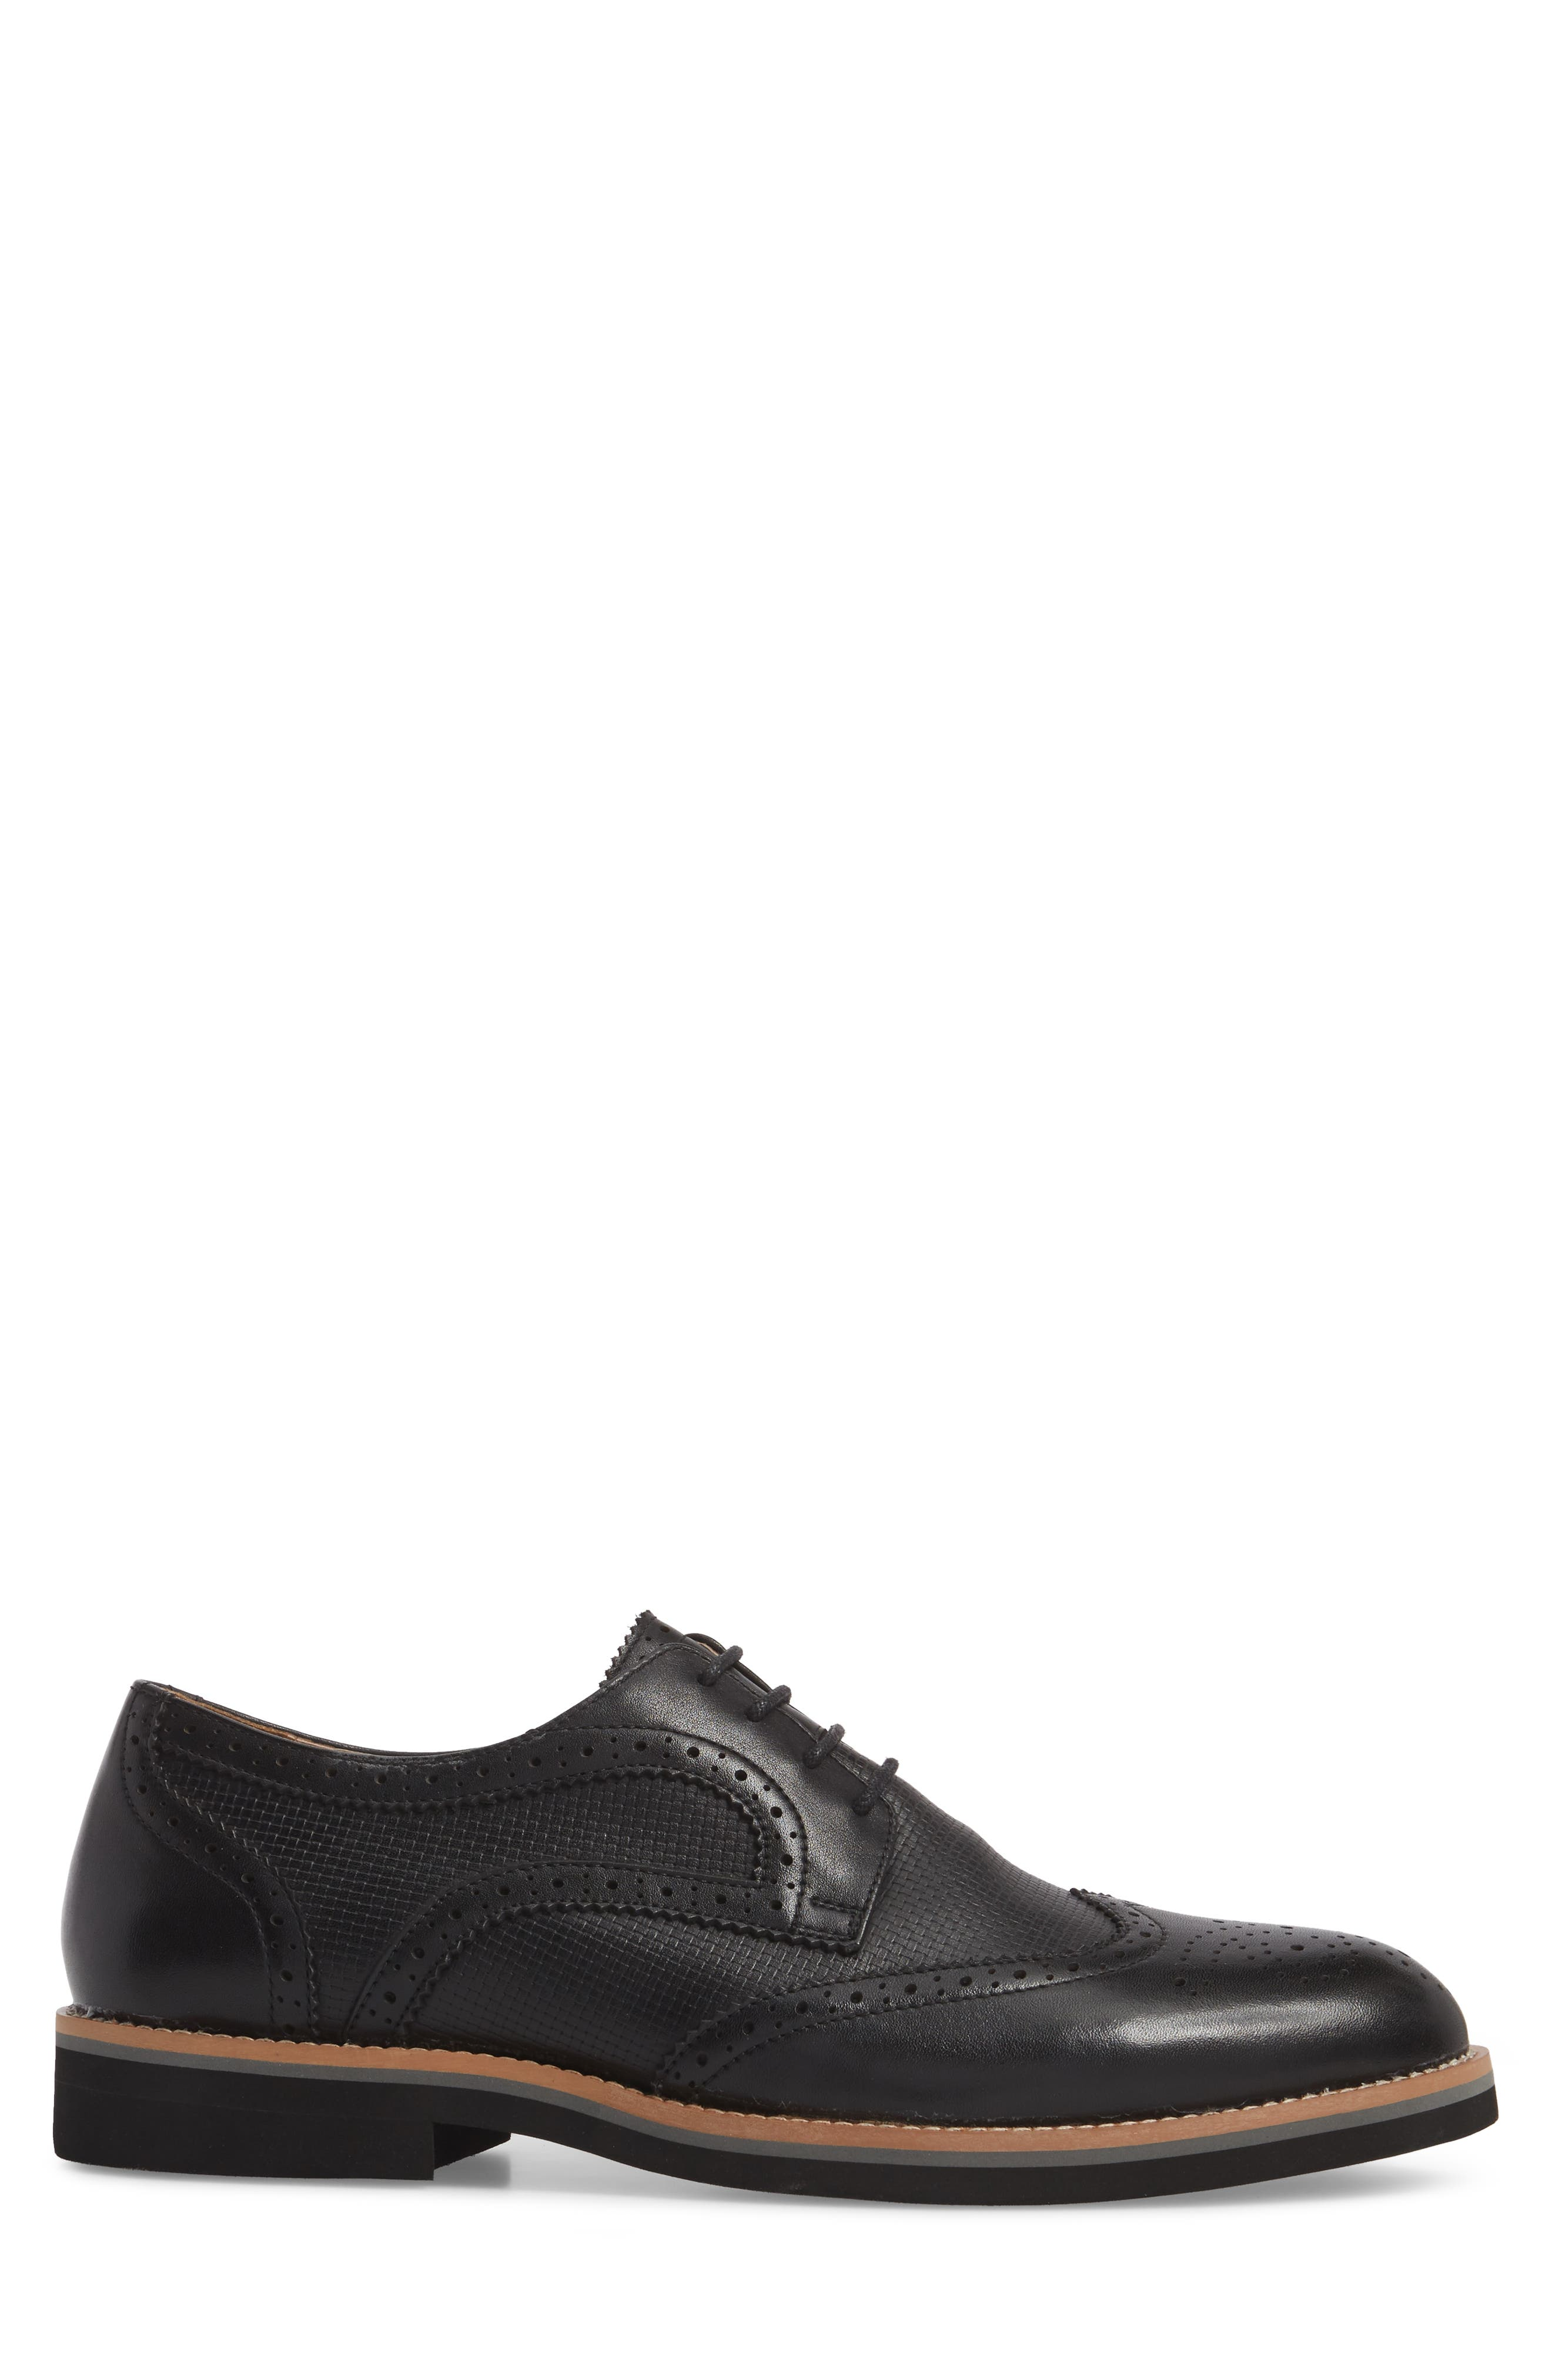 Cleave Embossed Wingtip,                             Alternate thumbnail 3, color,                             BLACK LEATHER